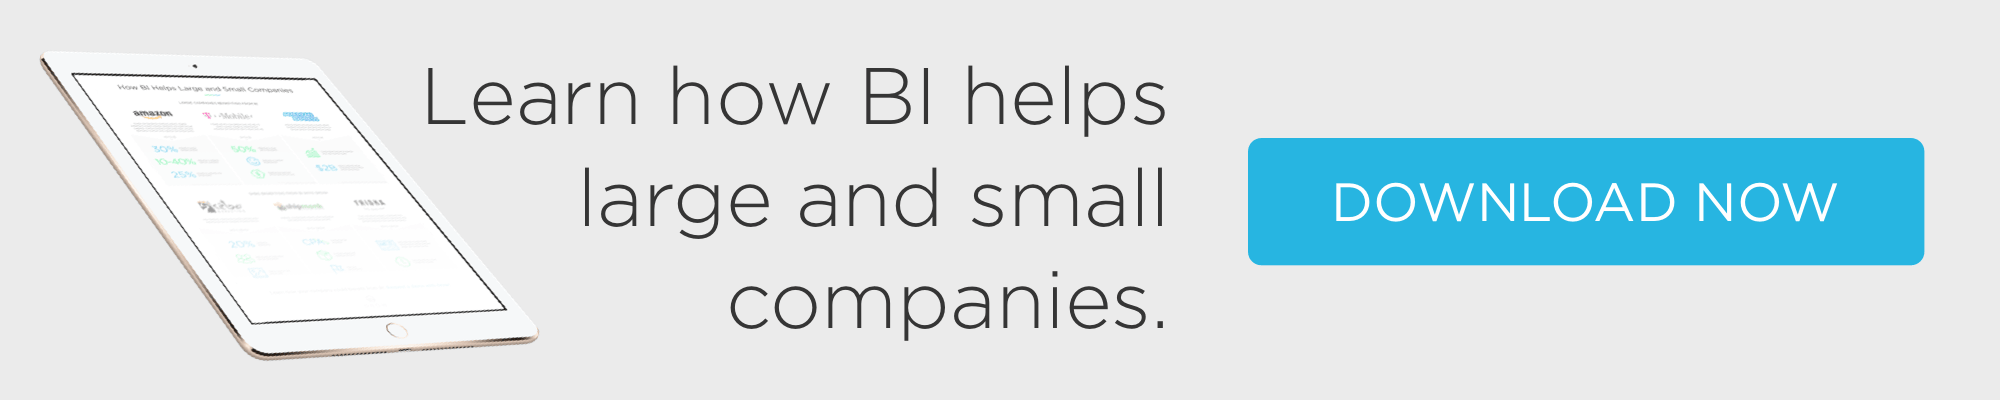 how BI helps large and small companies infographic